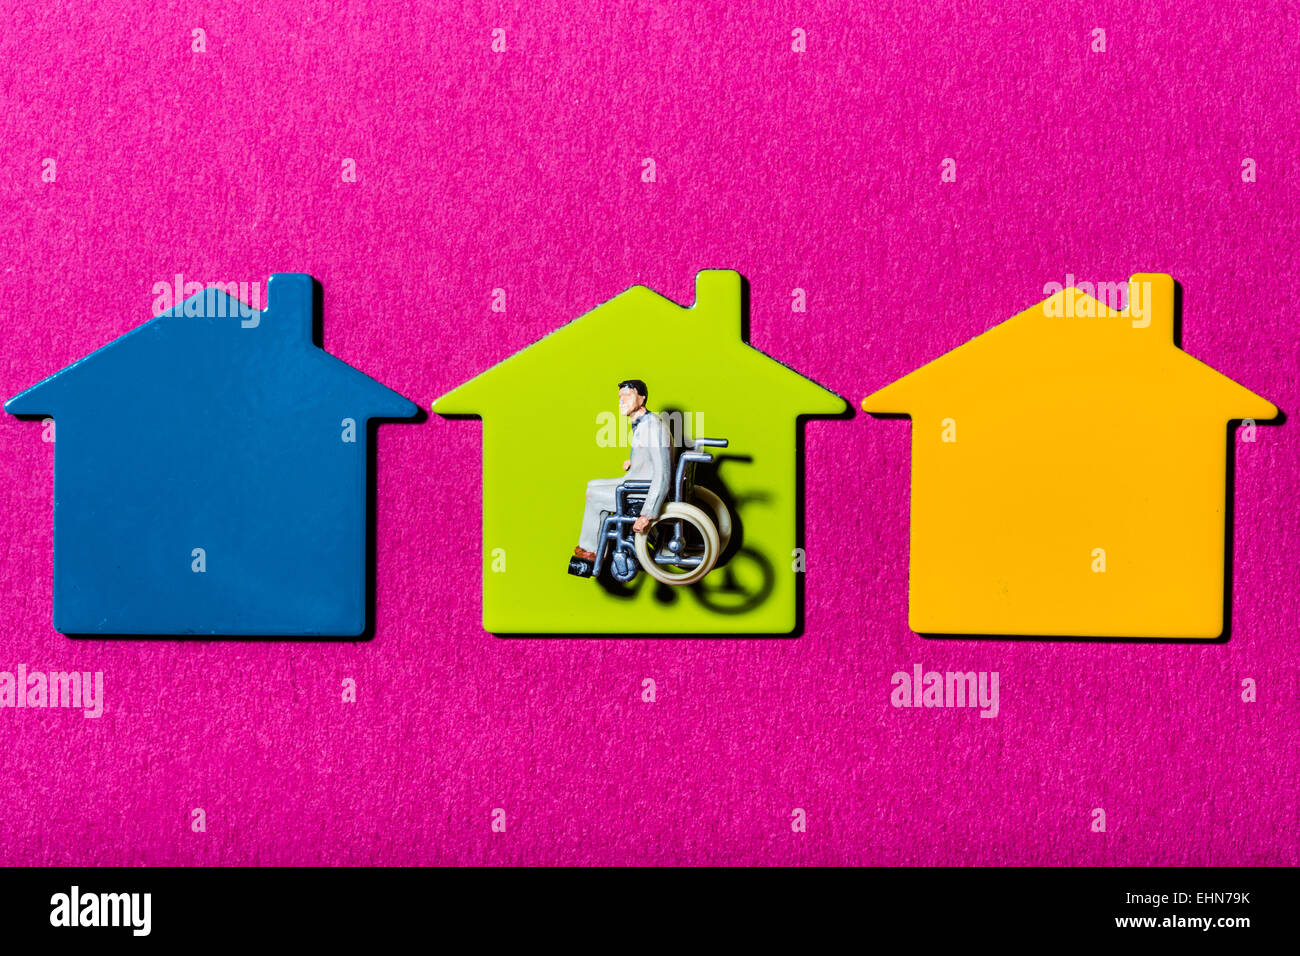 Conceptual image on accessibility for physically handicapped. - Stock Image